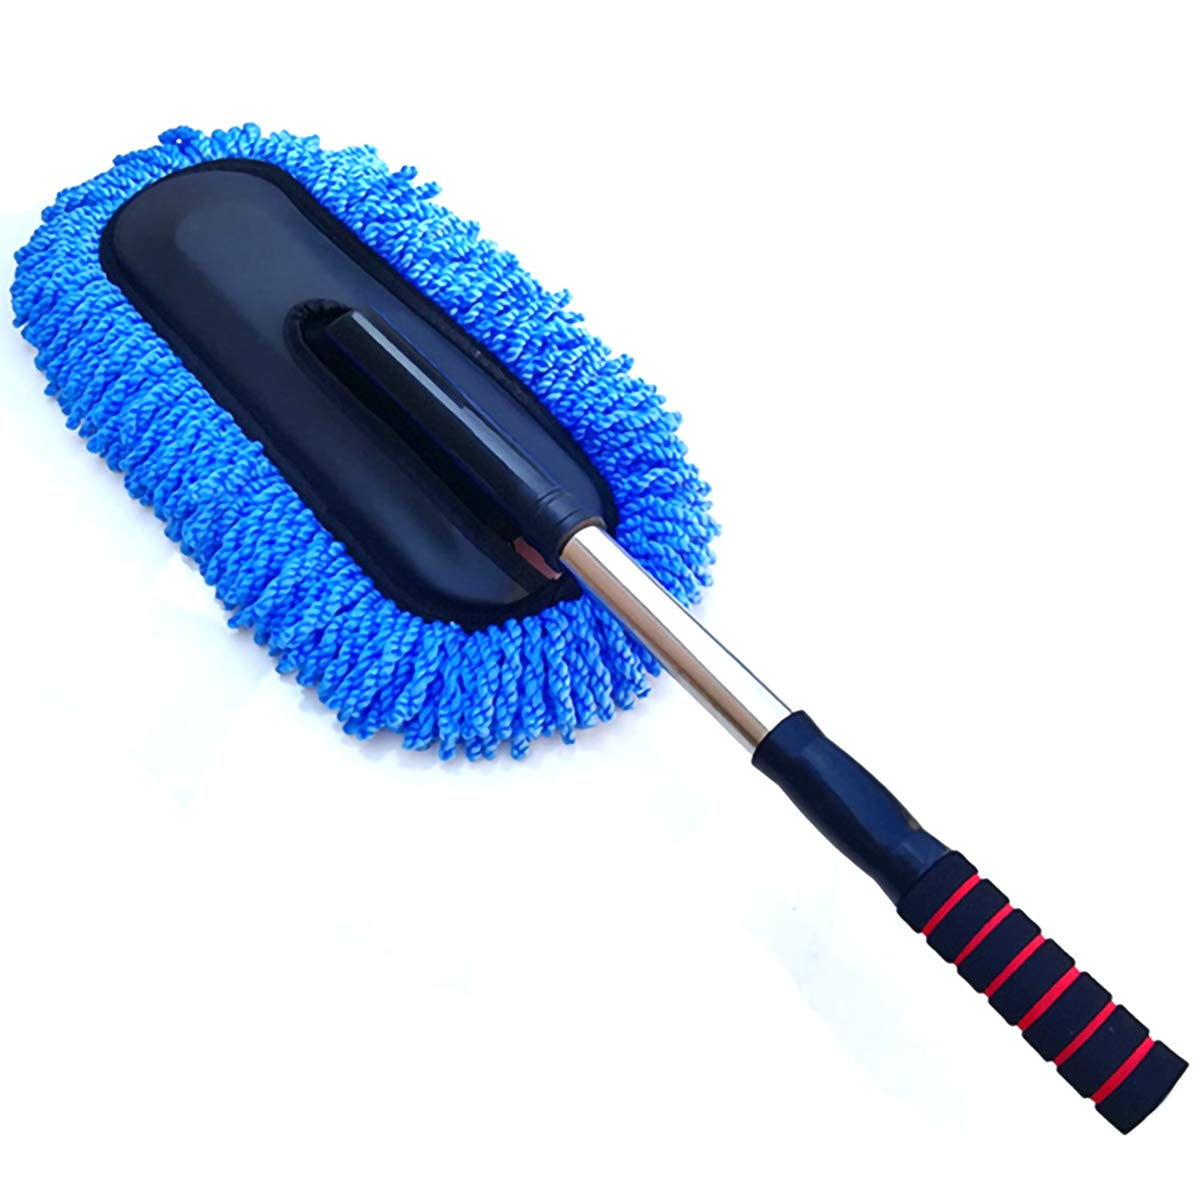 2TRIDENTS Anti Dust Car Wash Brush Car Washing Tool with Telescopic & Non Slip Handle for Vehicles House Cleaning for Glass Windows (Blue)